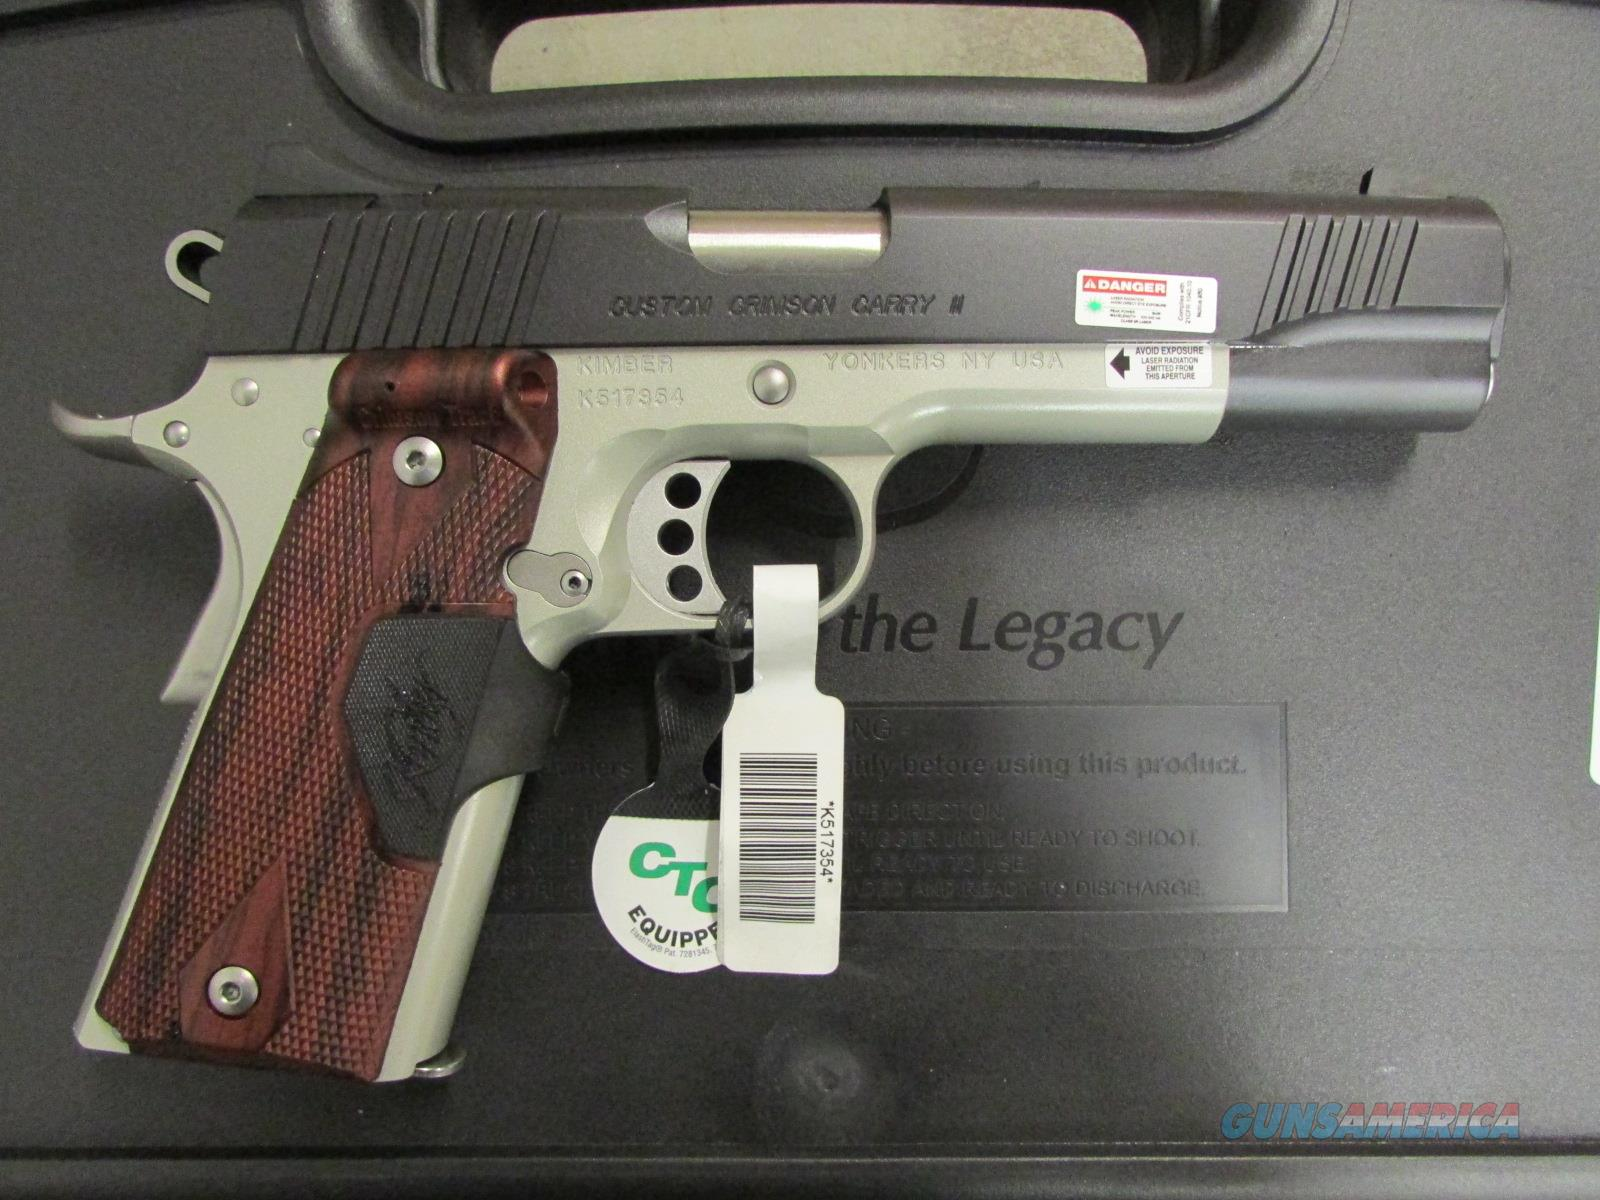 Kimber Custom Crimson Carry II Green Laser 1911 .45 ACP 3200288 Guns > Pistols >  Kimber of America Pistols > 1911